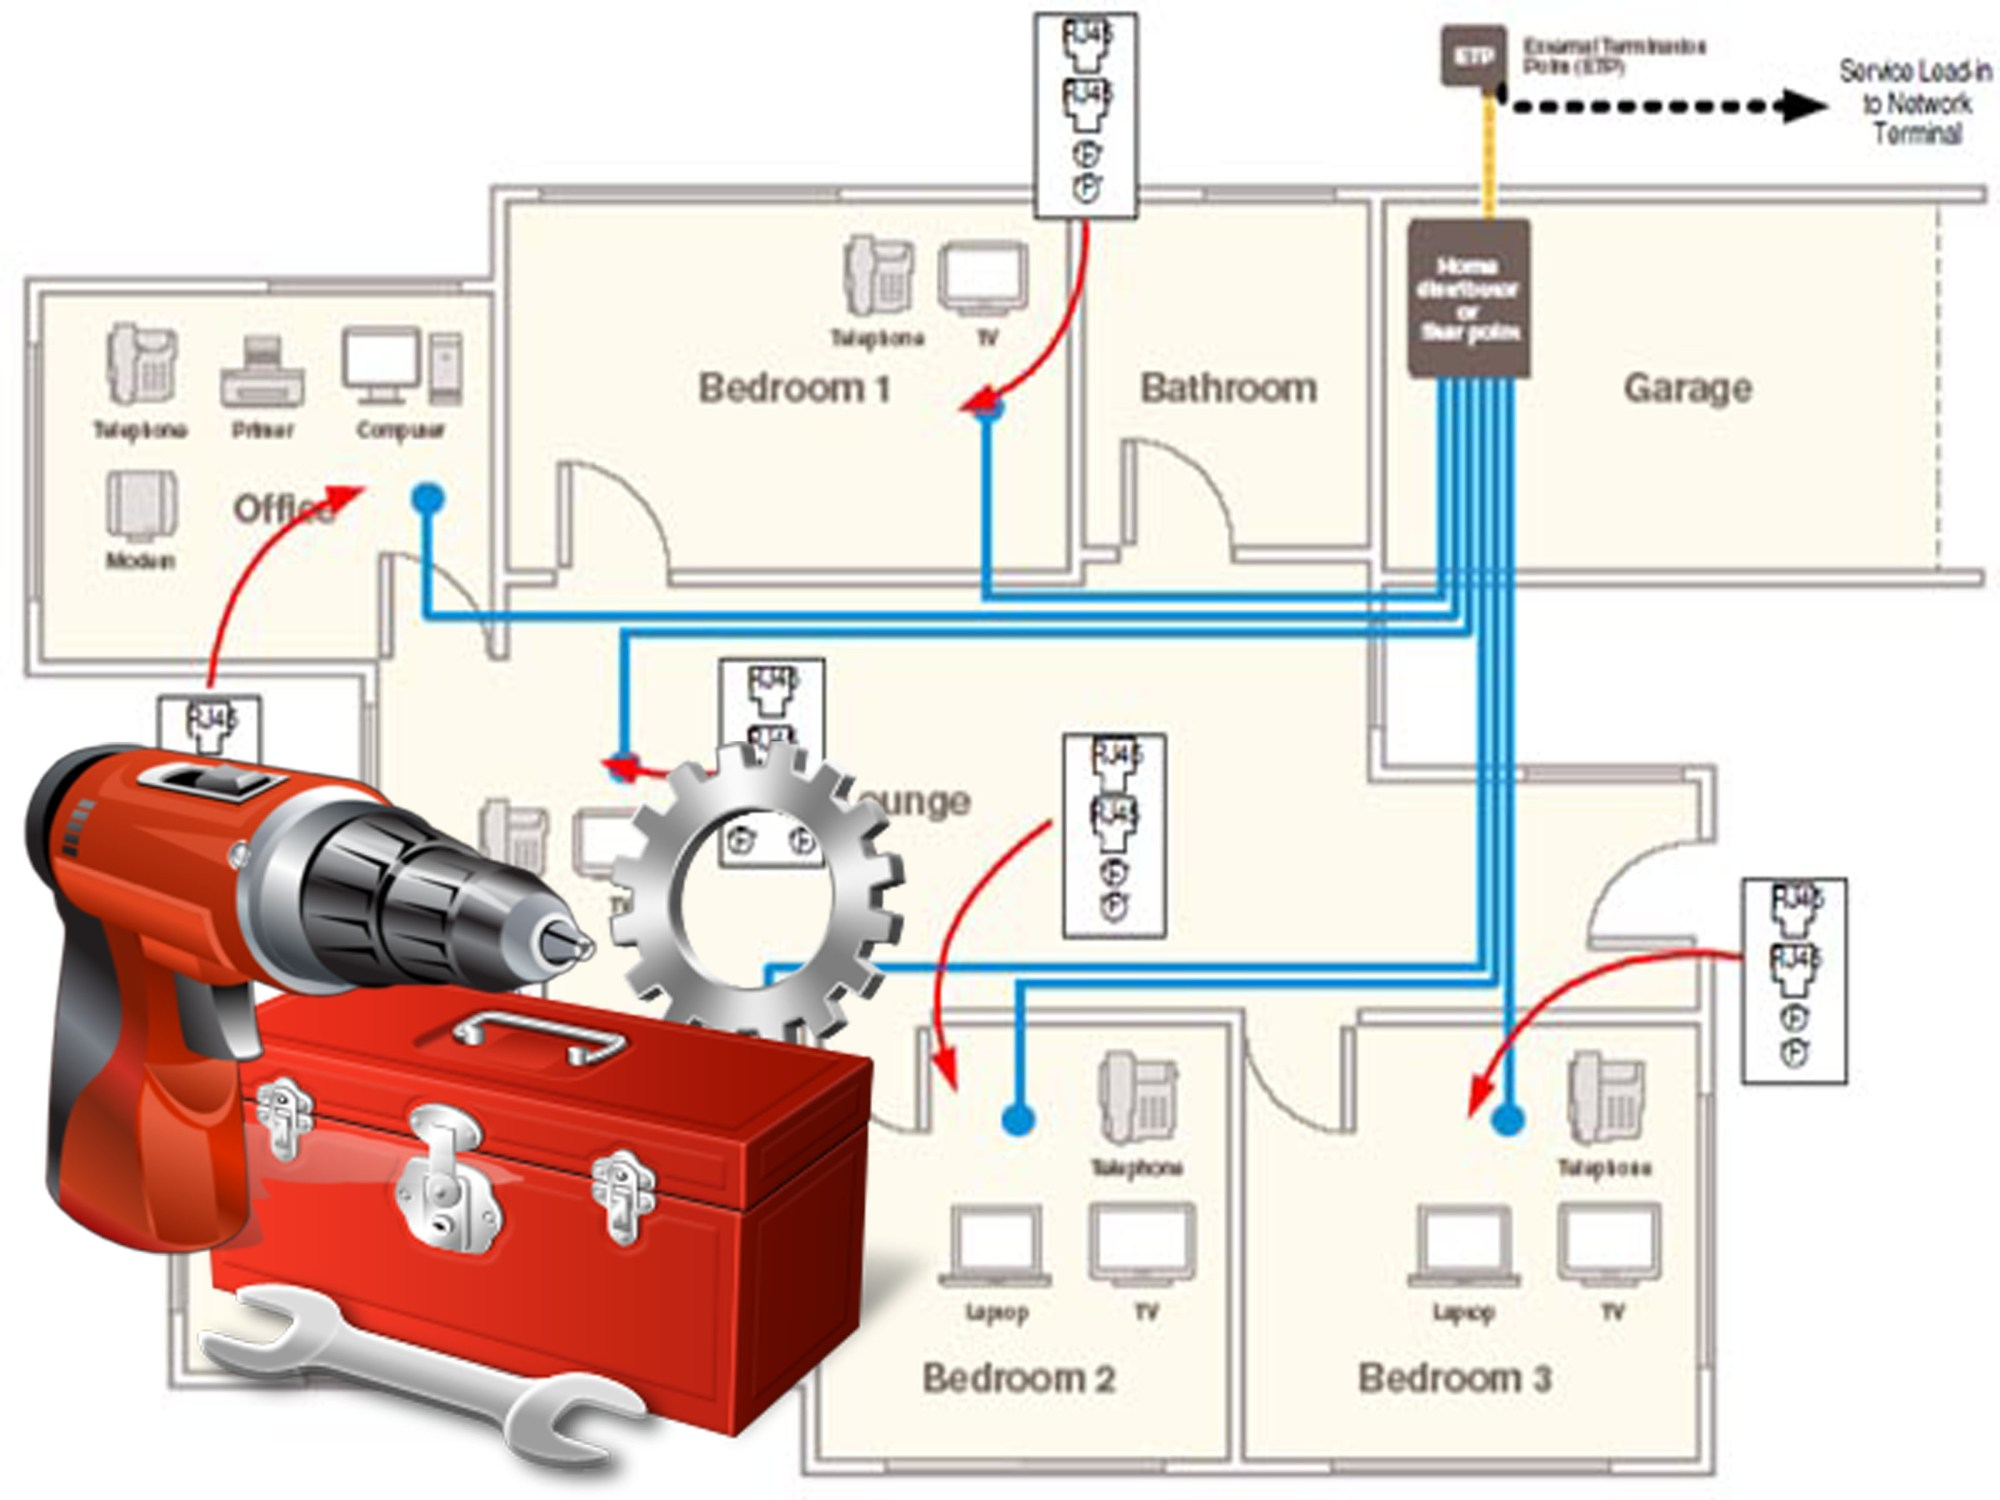 hight resolution of rv automatic transfer switch wiring diagram images wiring diagram wiring diagram rv conductor printable diagrams